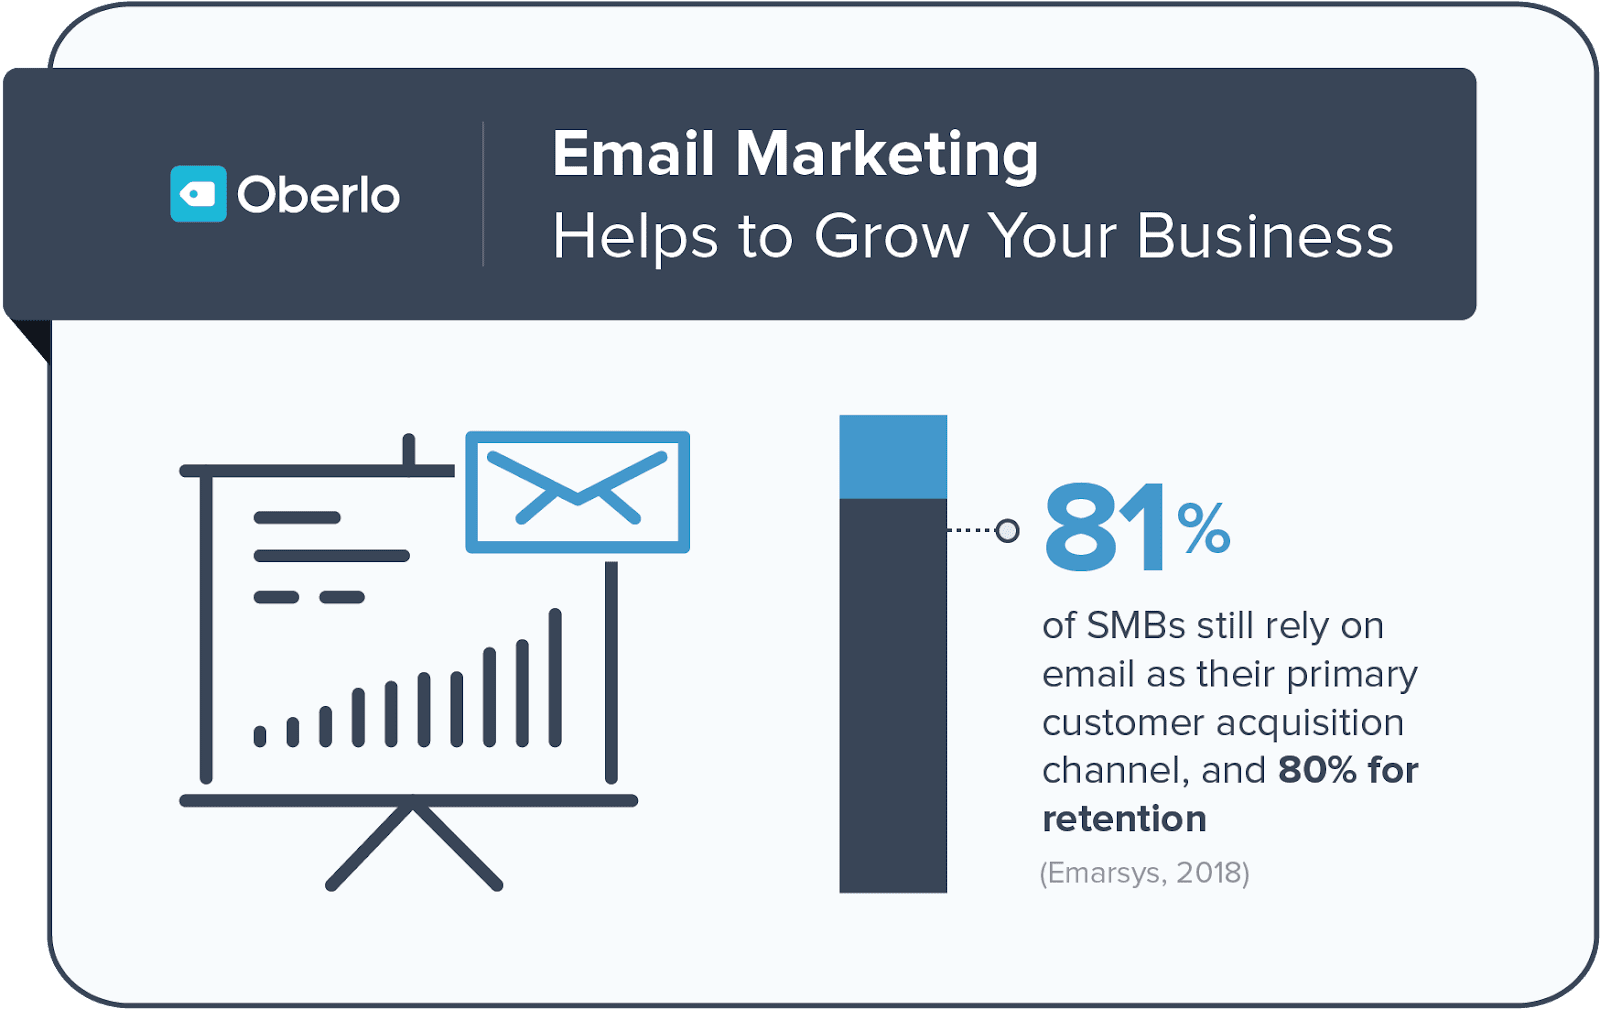 Email marketing statistic